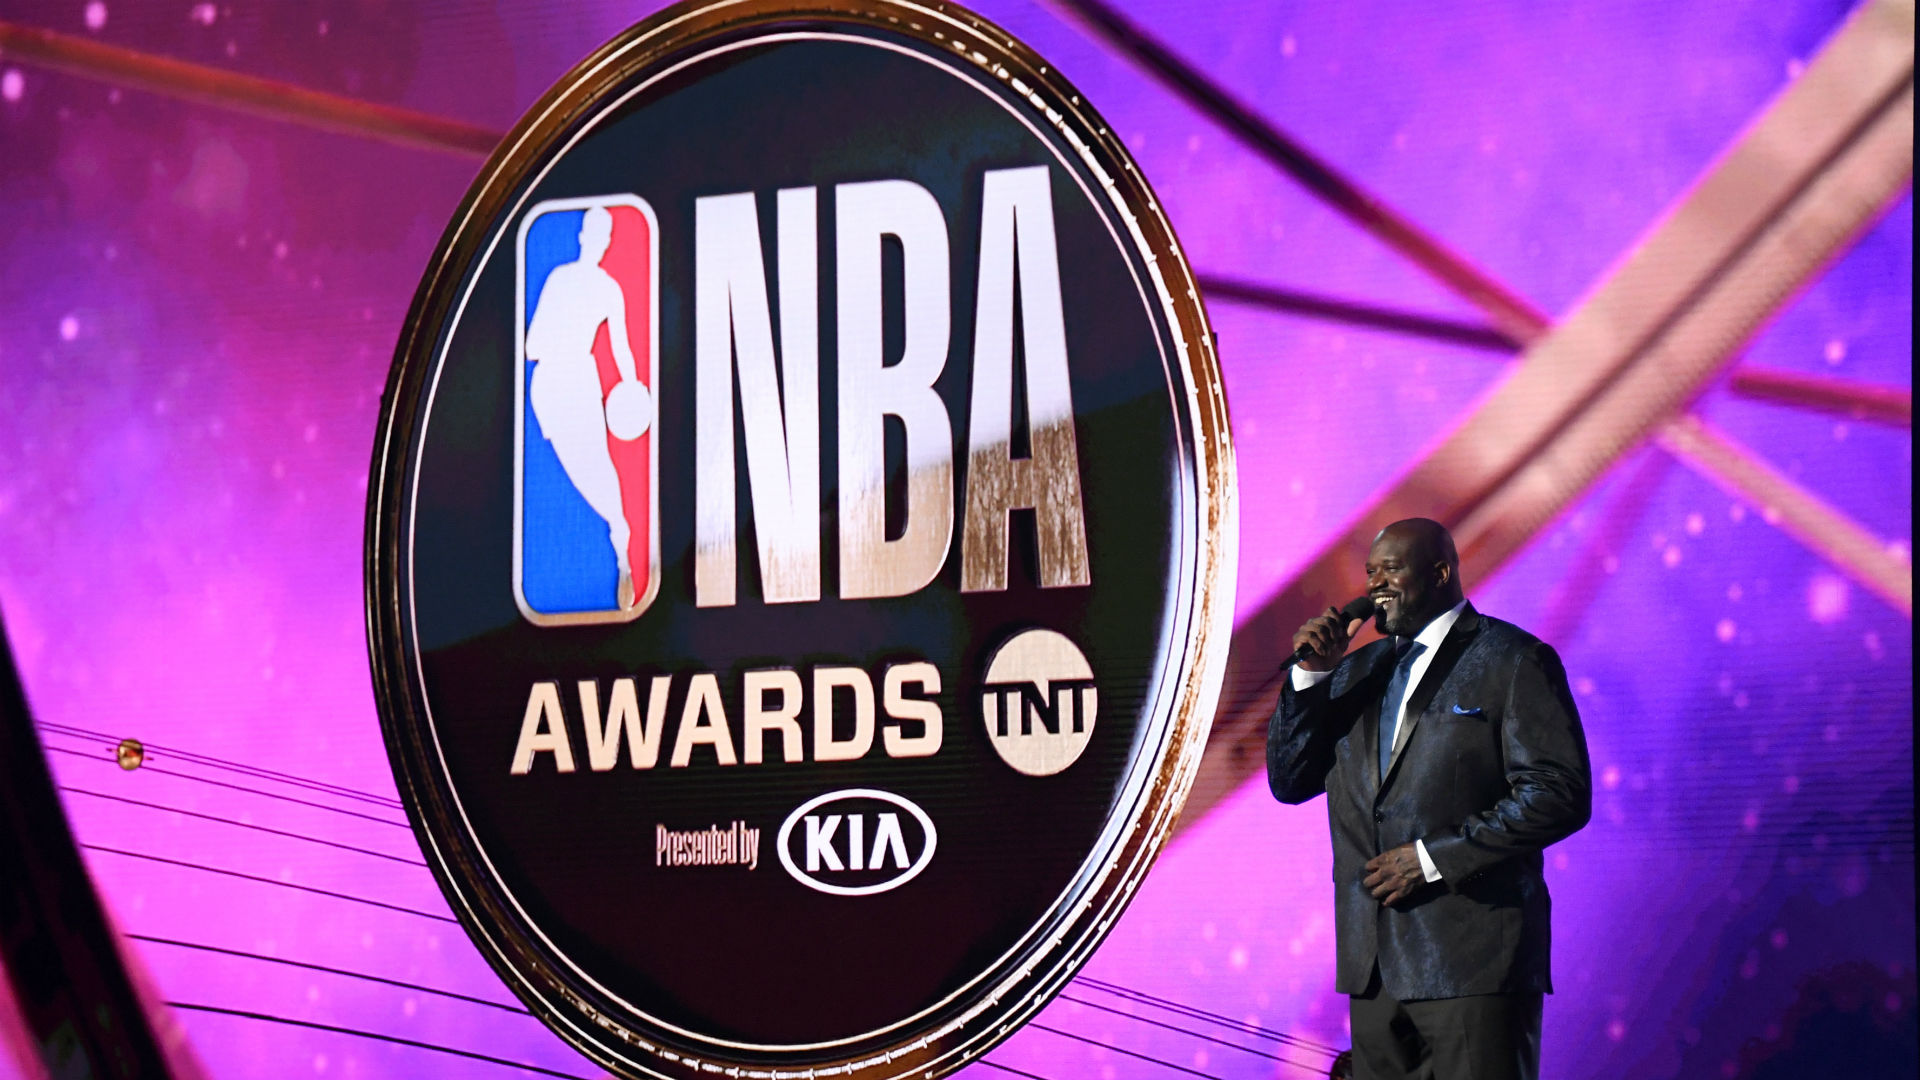 Nba Awards 2019 Live Updates Highlights Video And More From The 2019 Nba Awards Nba Com Canada The Official Site Of The Nba